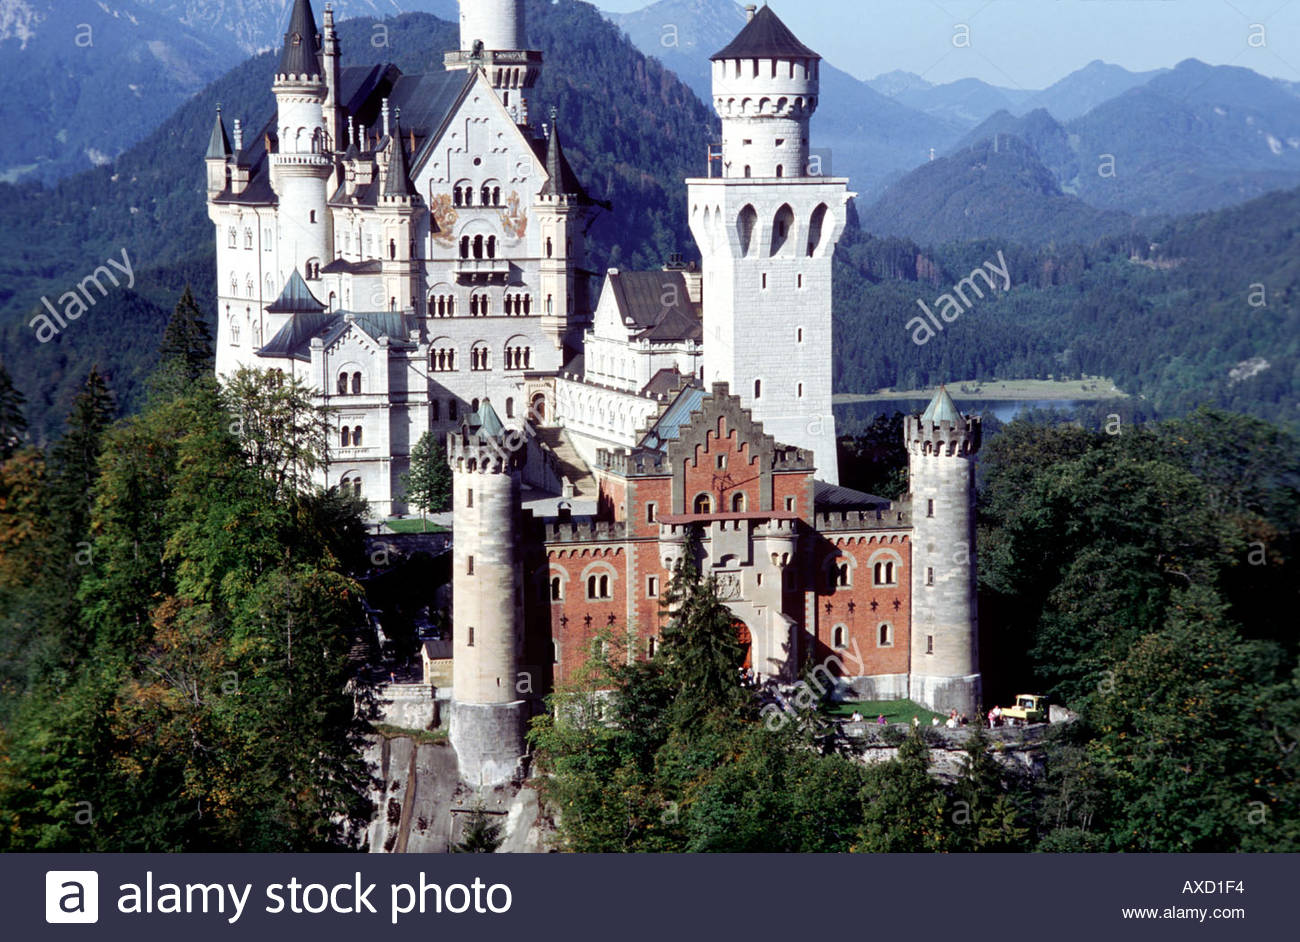 Schloss Steinau The Fairy-Tale Road, Fairy Tale Road Germany Stock Photos & Fairy Tale Road Germany ...